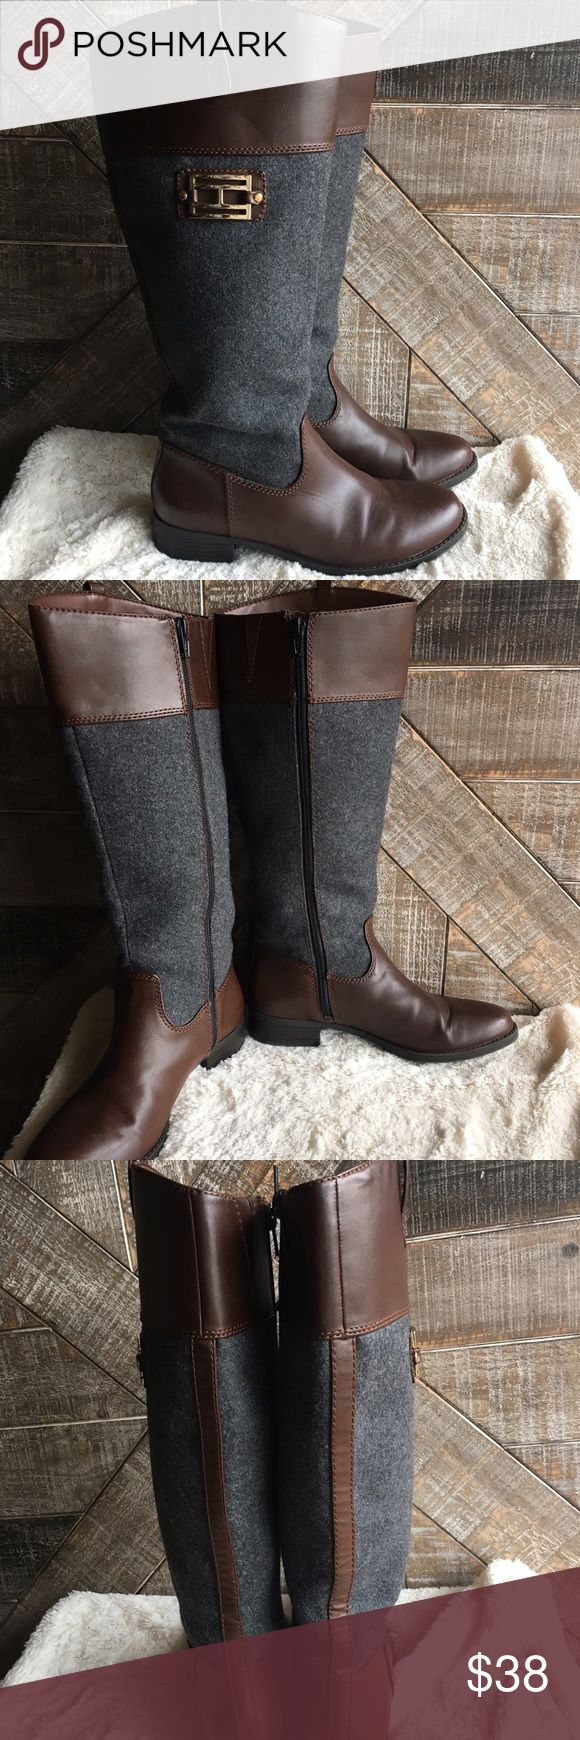 Gray and Brown Tommy Hilfiger Tall Boots Gray and Brown Tall Tommy Hilfiger Boots in good used  condition. Womens size 7. No trades, reasonable offers through the offer button. Tommy Hilfiger Shoes